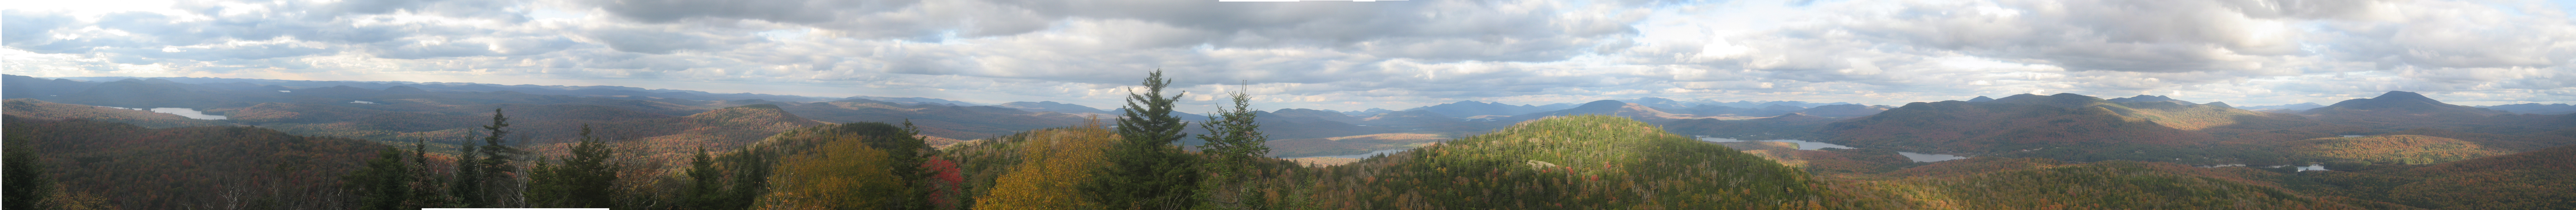 Owls Head Mountain Panoramic View